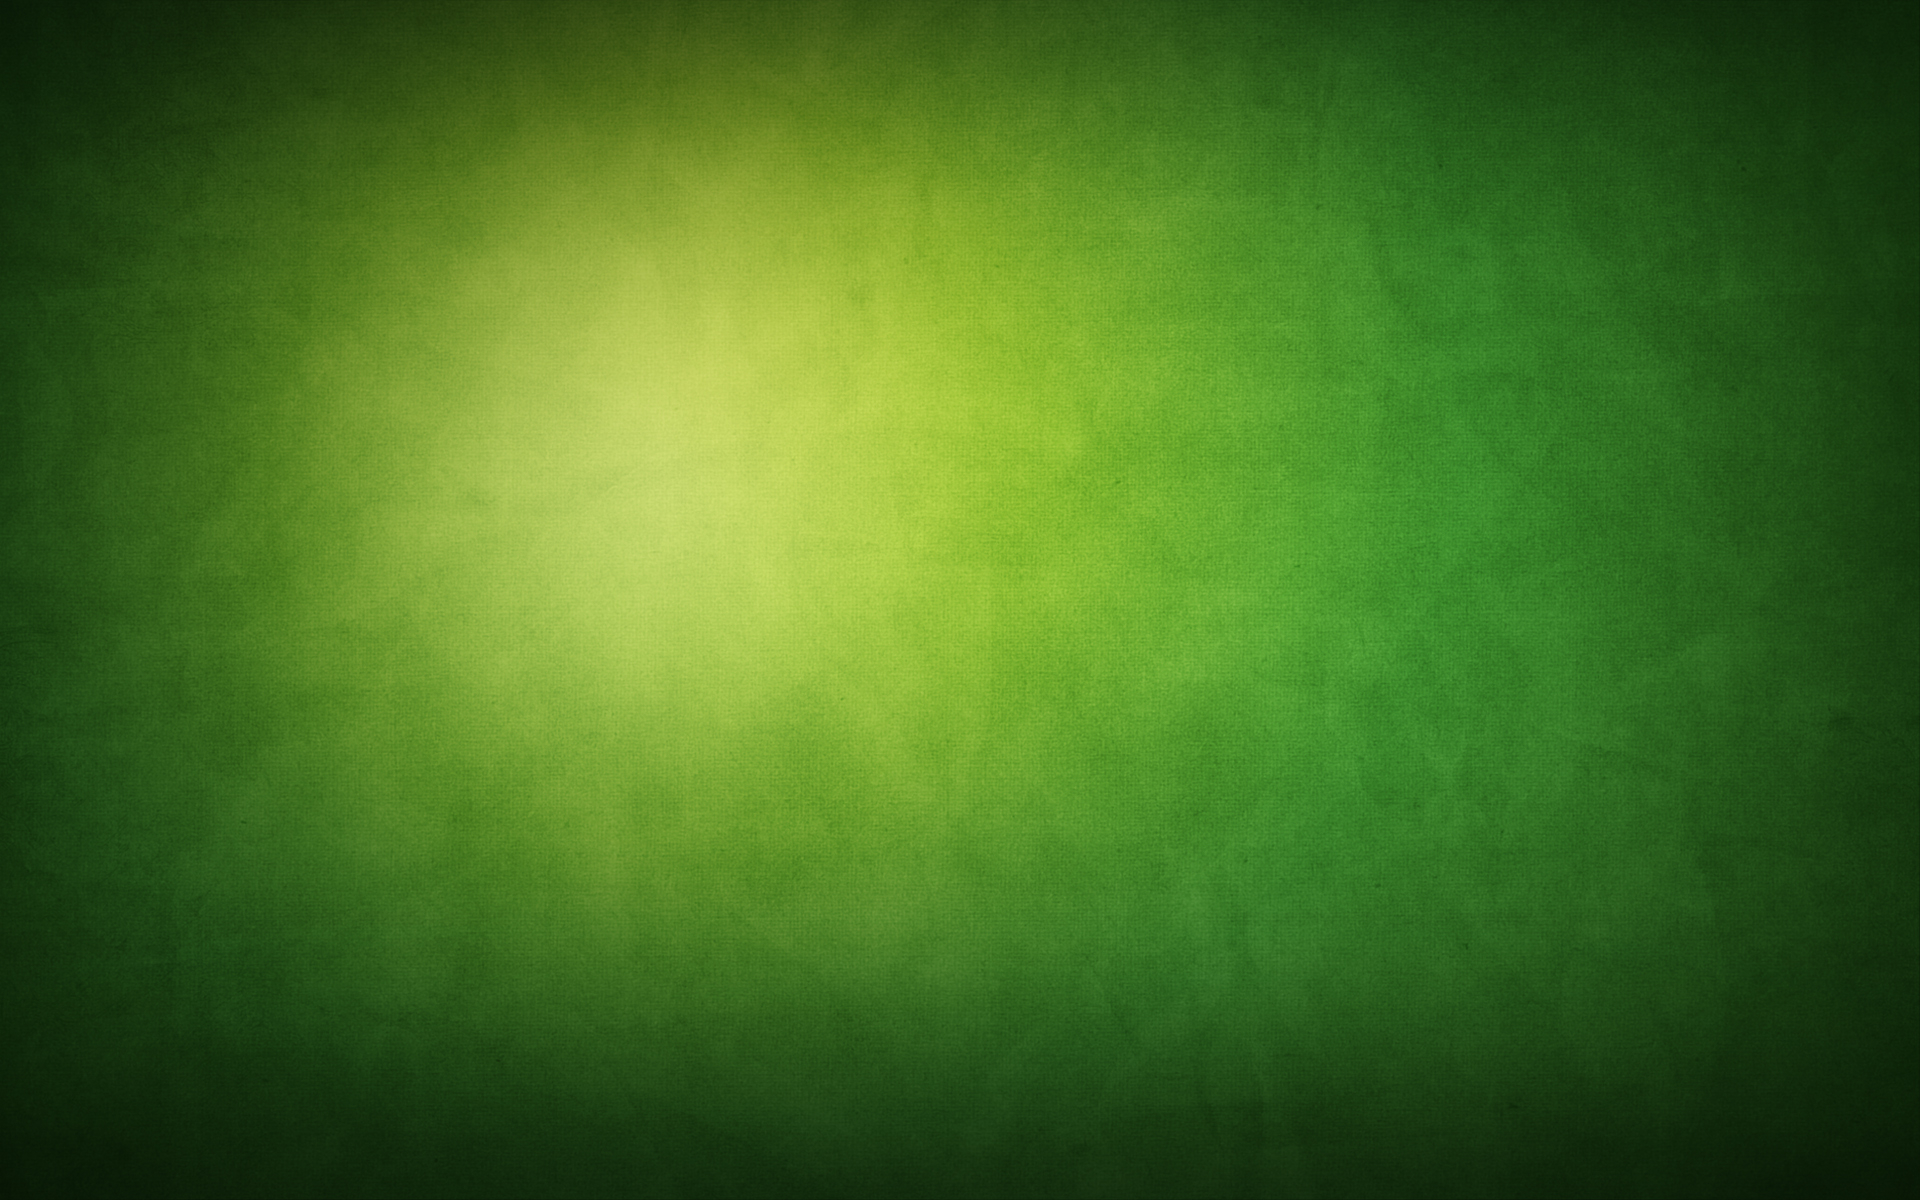 Green Background   Wallpaper 32816 1920x1200